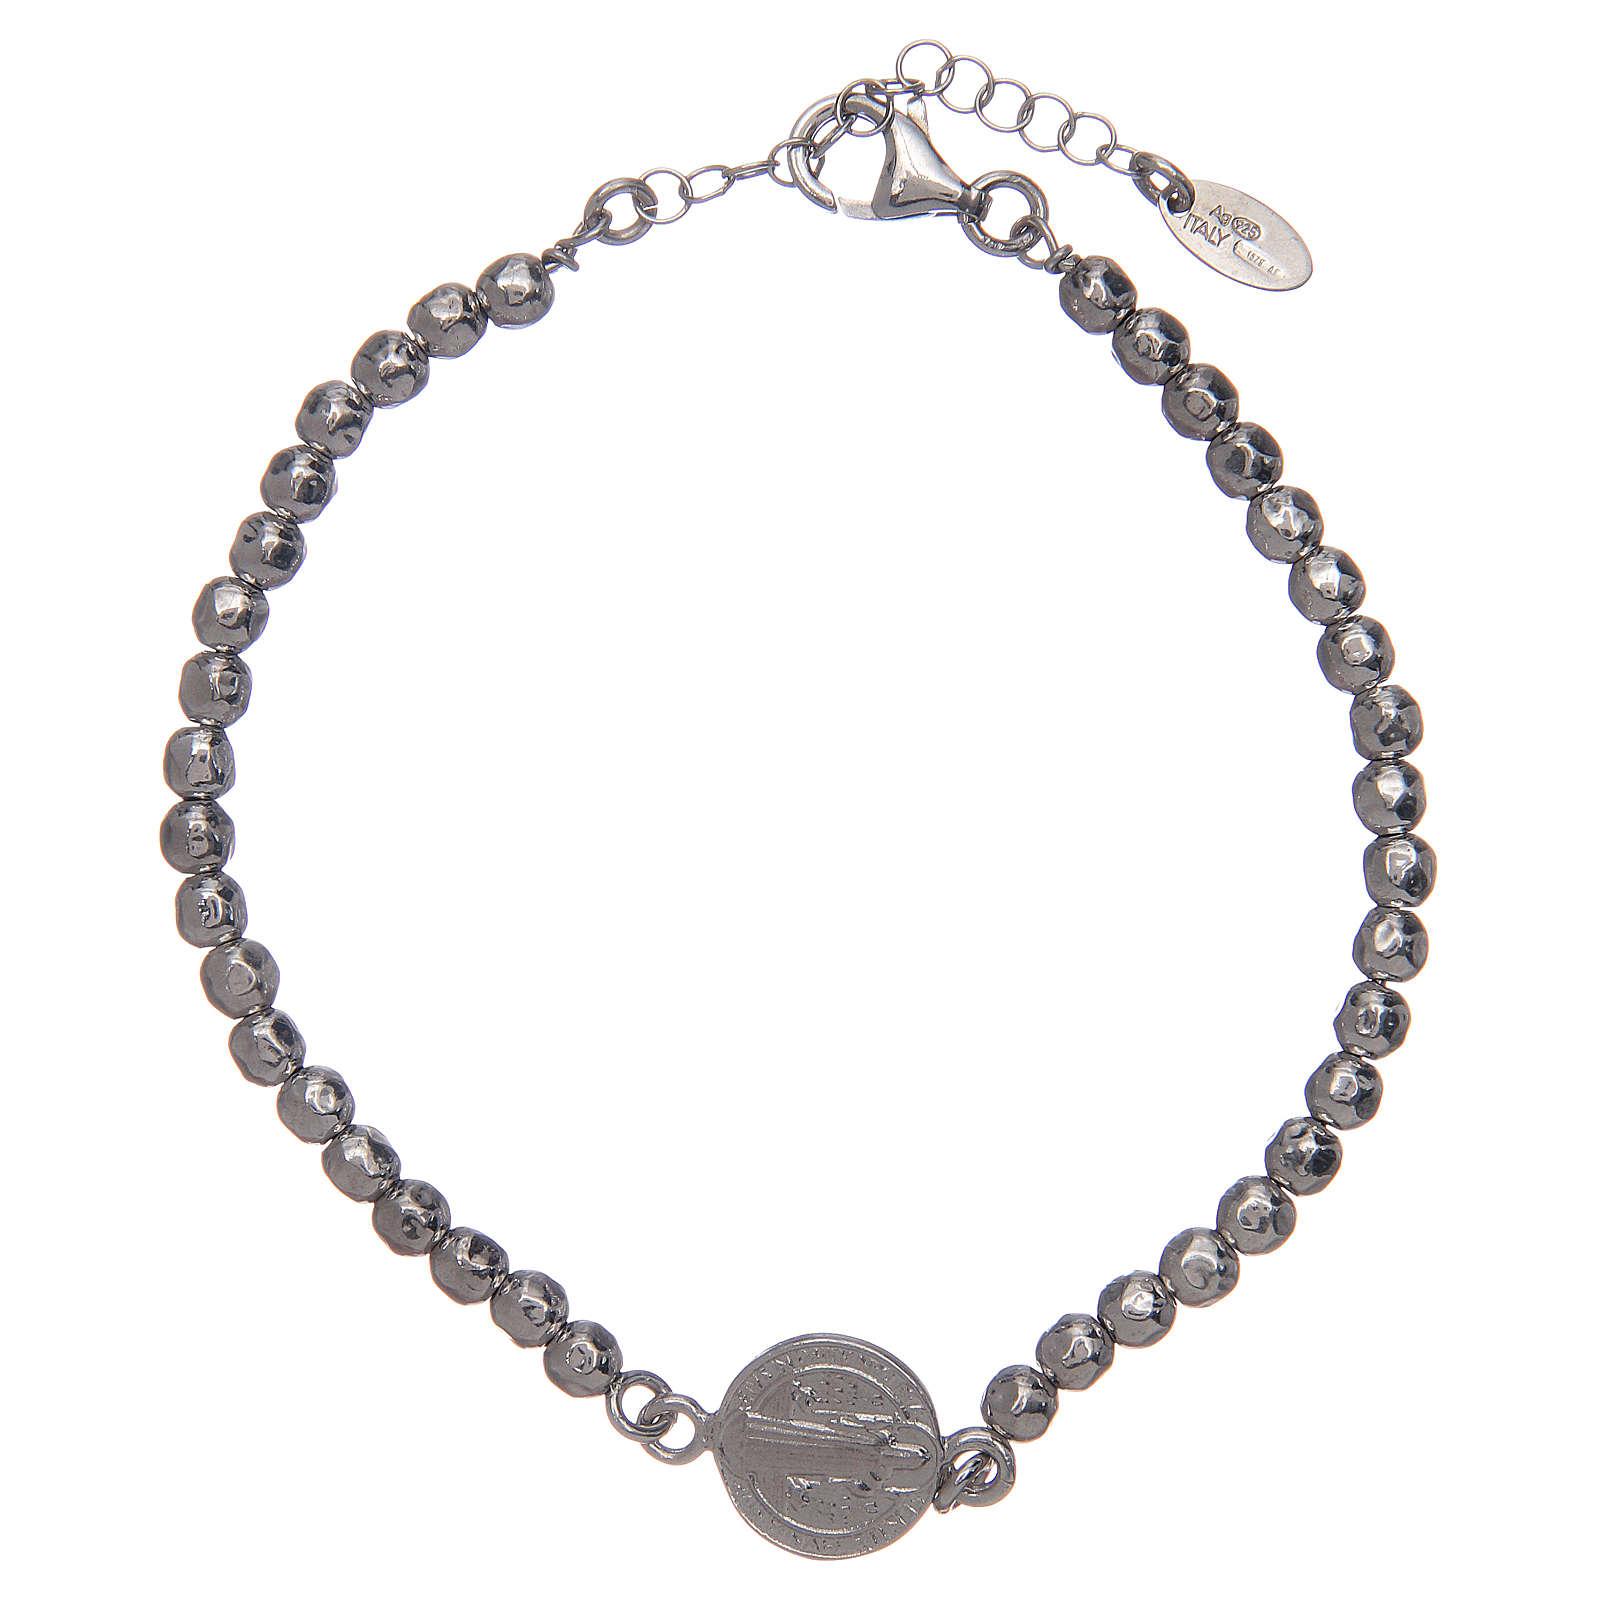 Saint Benedict men's bracelet in silver 4